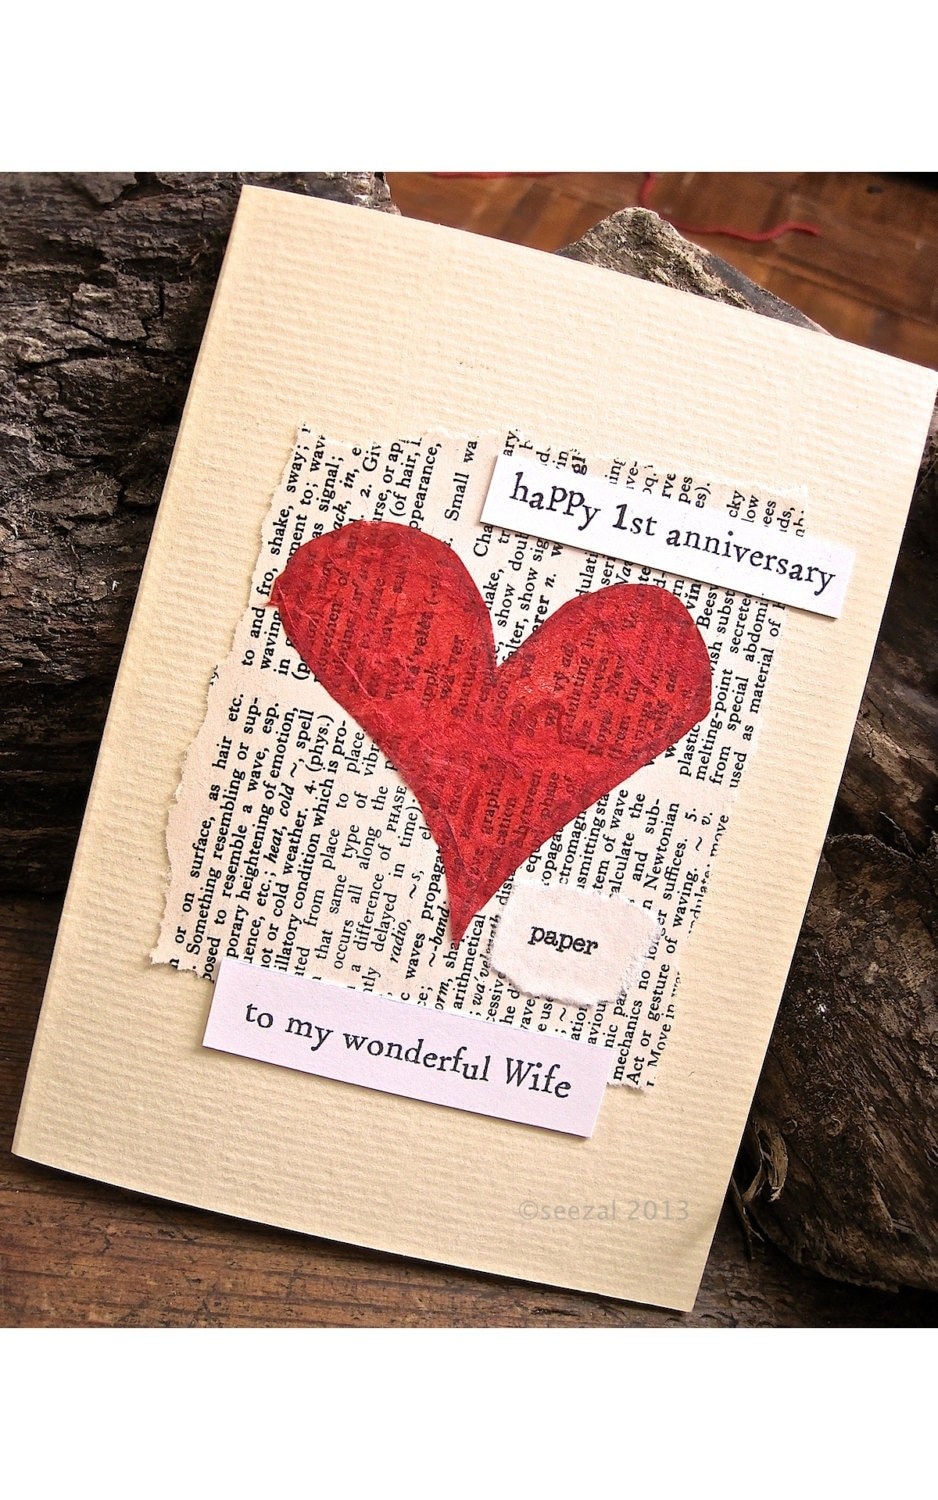 First wedding anniversary card paper vintage book page with